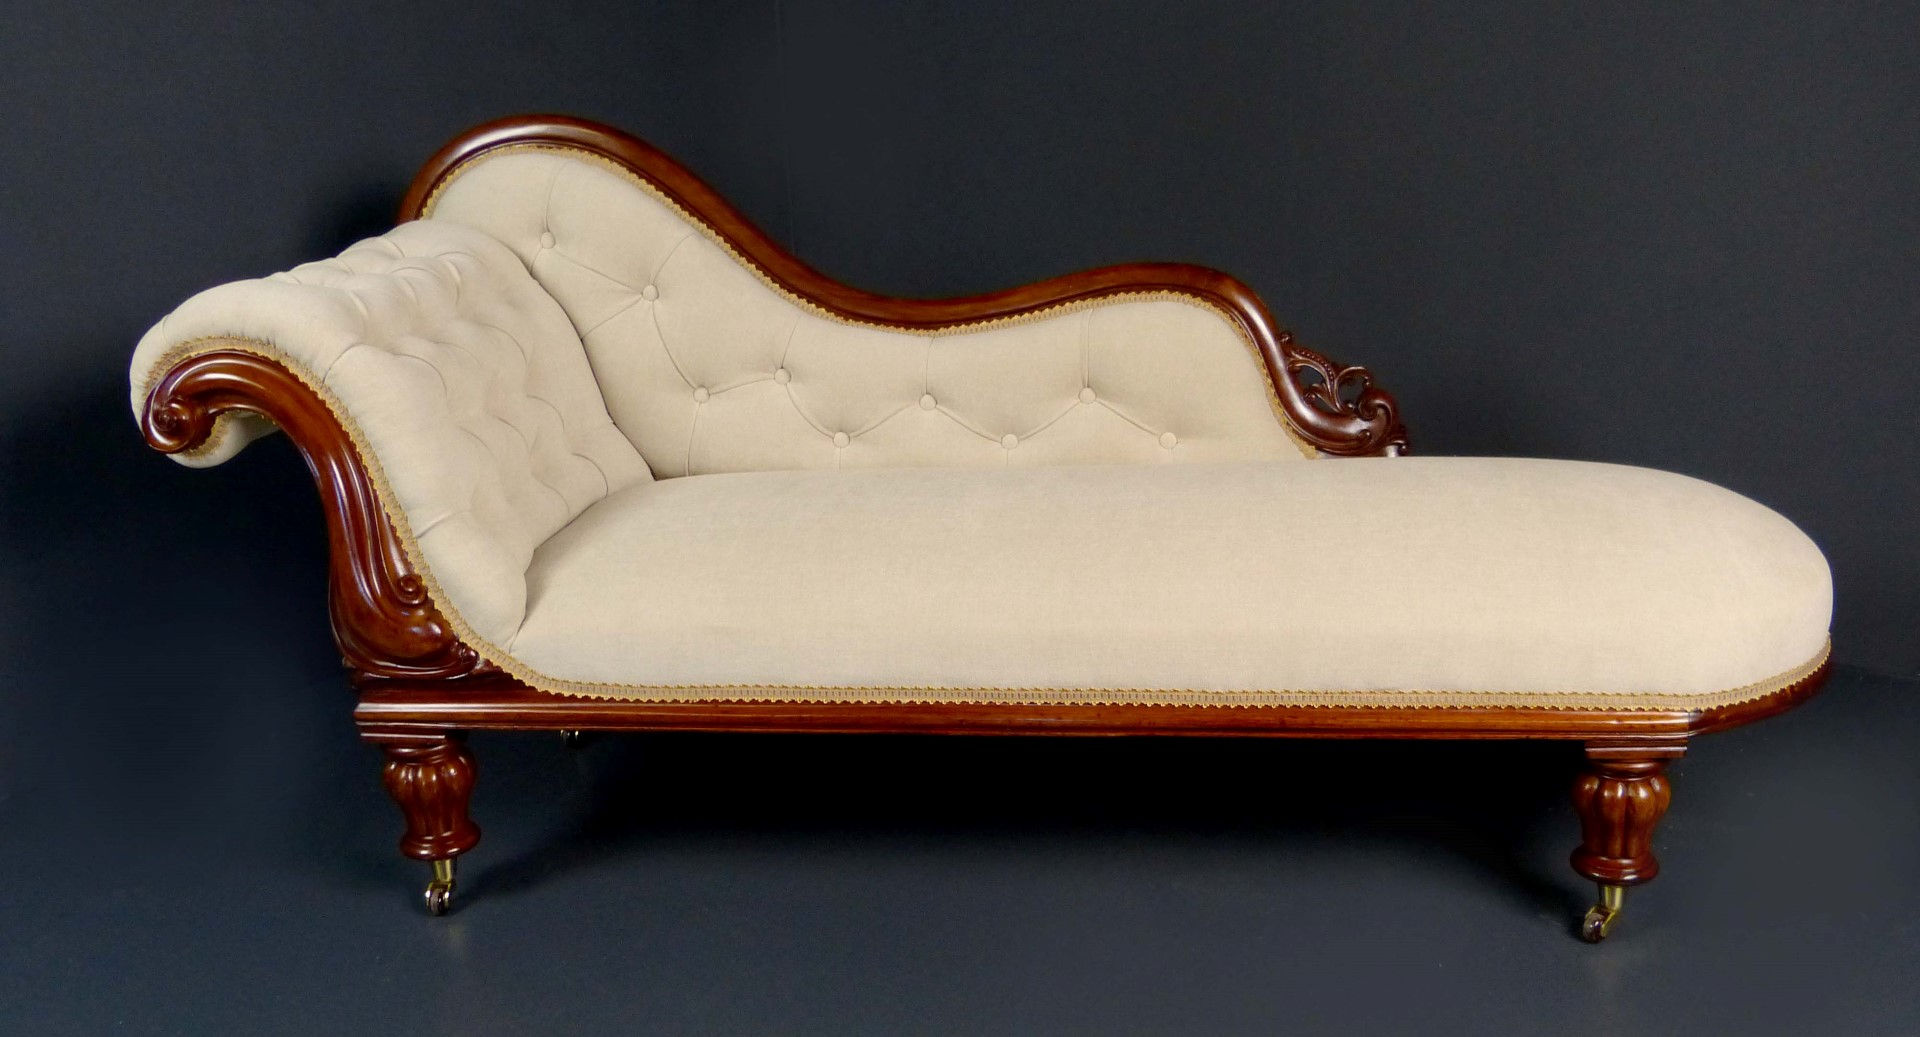 Antique Victorian Chaise Longue on victorian chaise furniture, victorian folding chair, victorian country, victorian office chair, victorian loveseat, victorian nursing chair, victorian wheelchair, victorian chest, victorian mother's day, victorian sideboard, victorian urns, victorian era chaise, victorian rocking chair, victorian credenza, victorian club chair, victorian tables, victorian chaise lounge, victorian couch, victorian candles, victorian recliner,